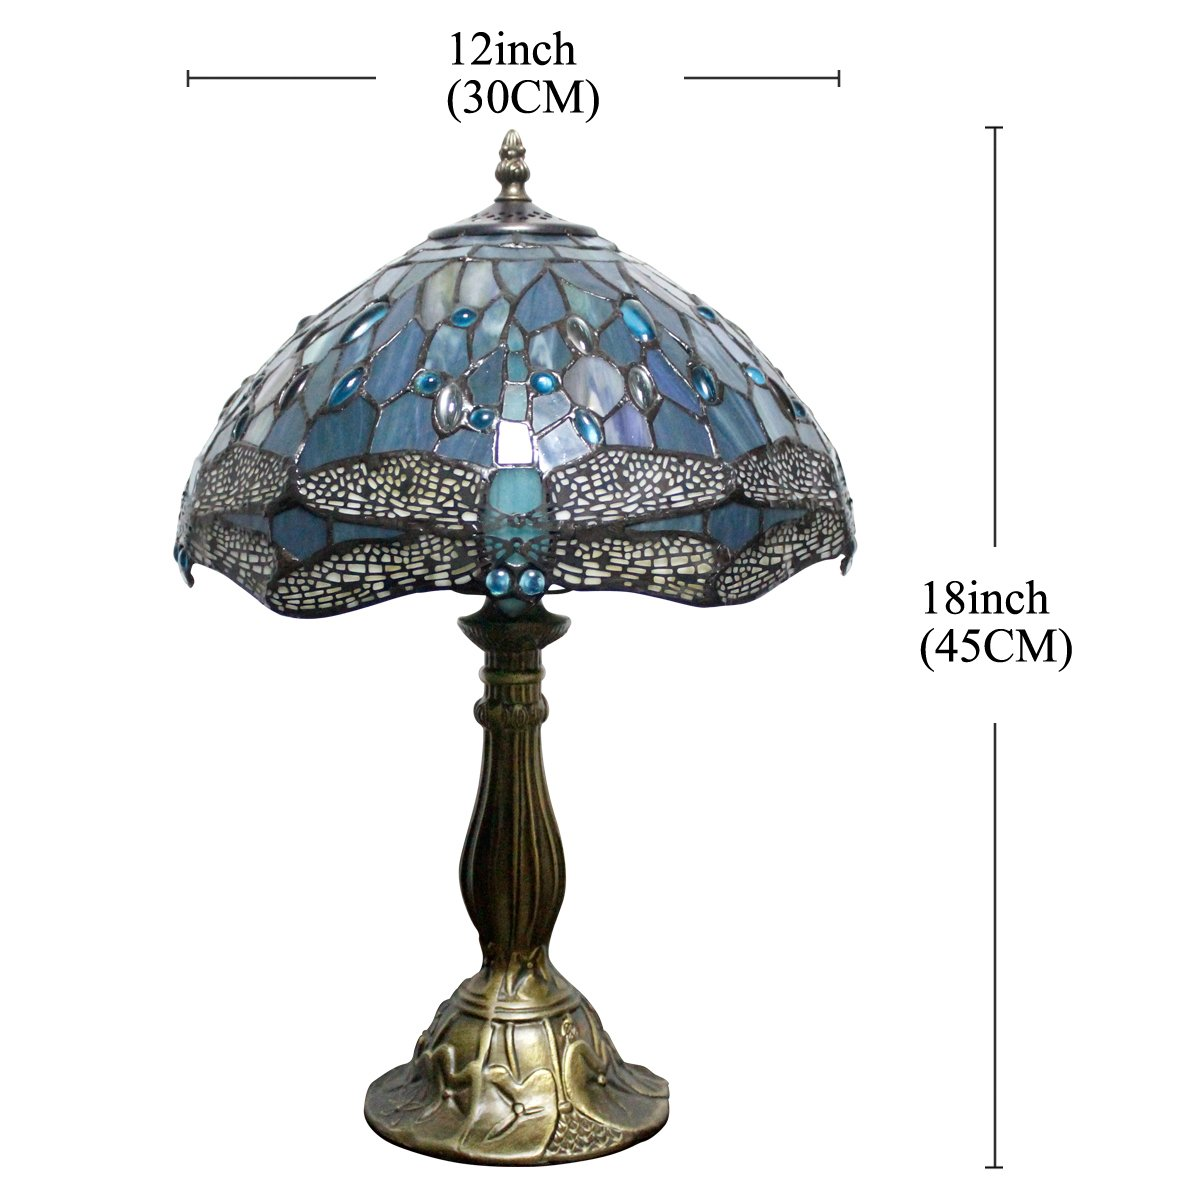 Tiffany Lamp With Sea Blue Stained Glass and Crystal Bead Dragonfly Table Lamp In Height 18 Inch For Living Room by WERFACTORY (Image #6)